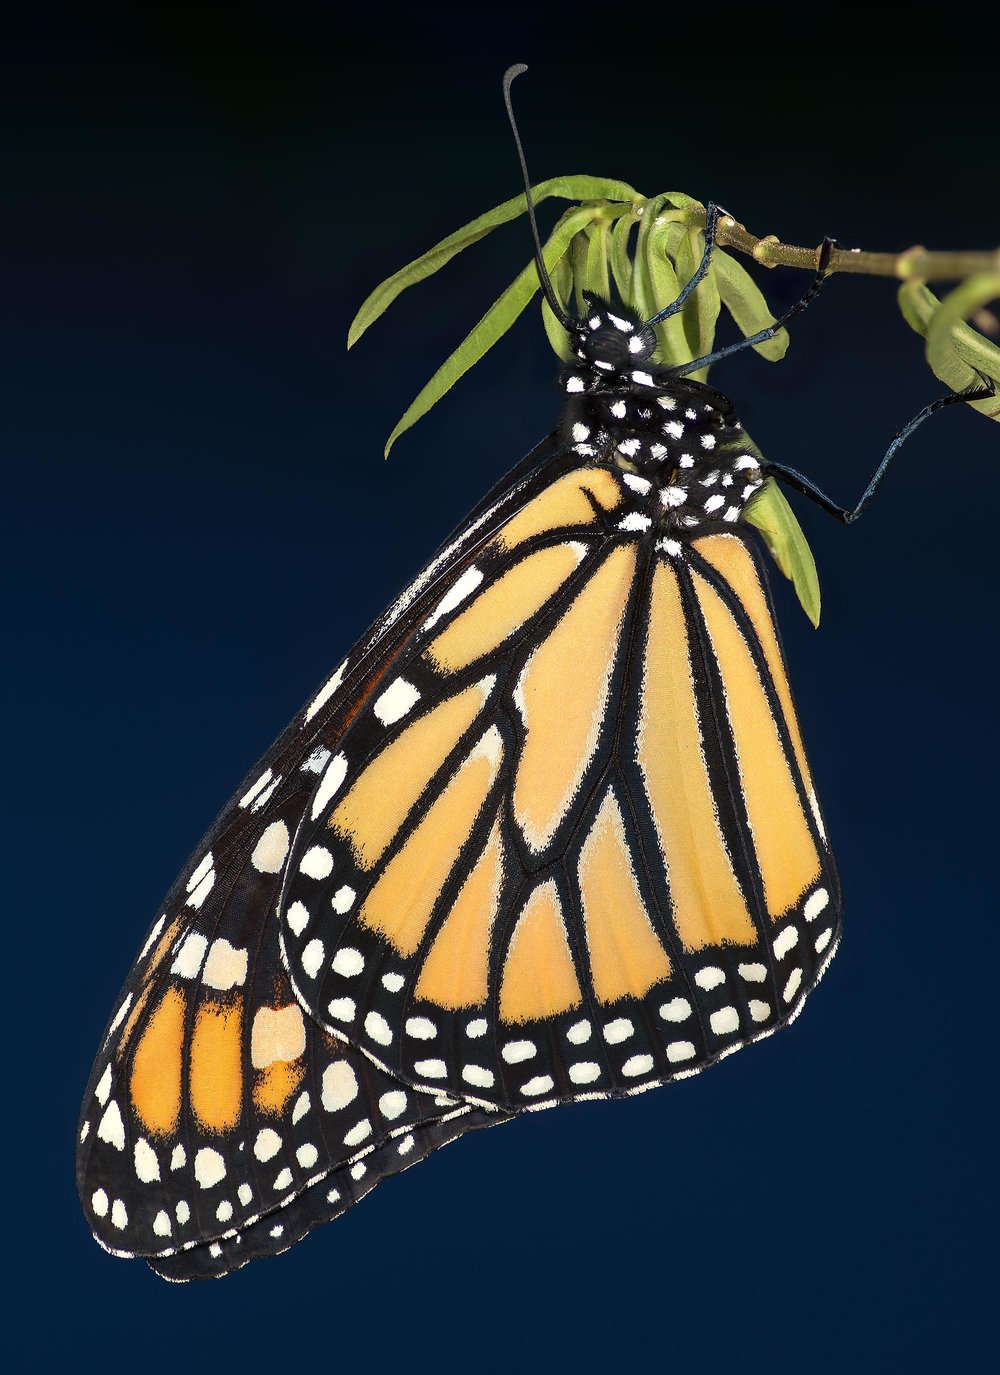 Adult Monarch